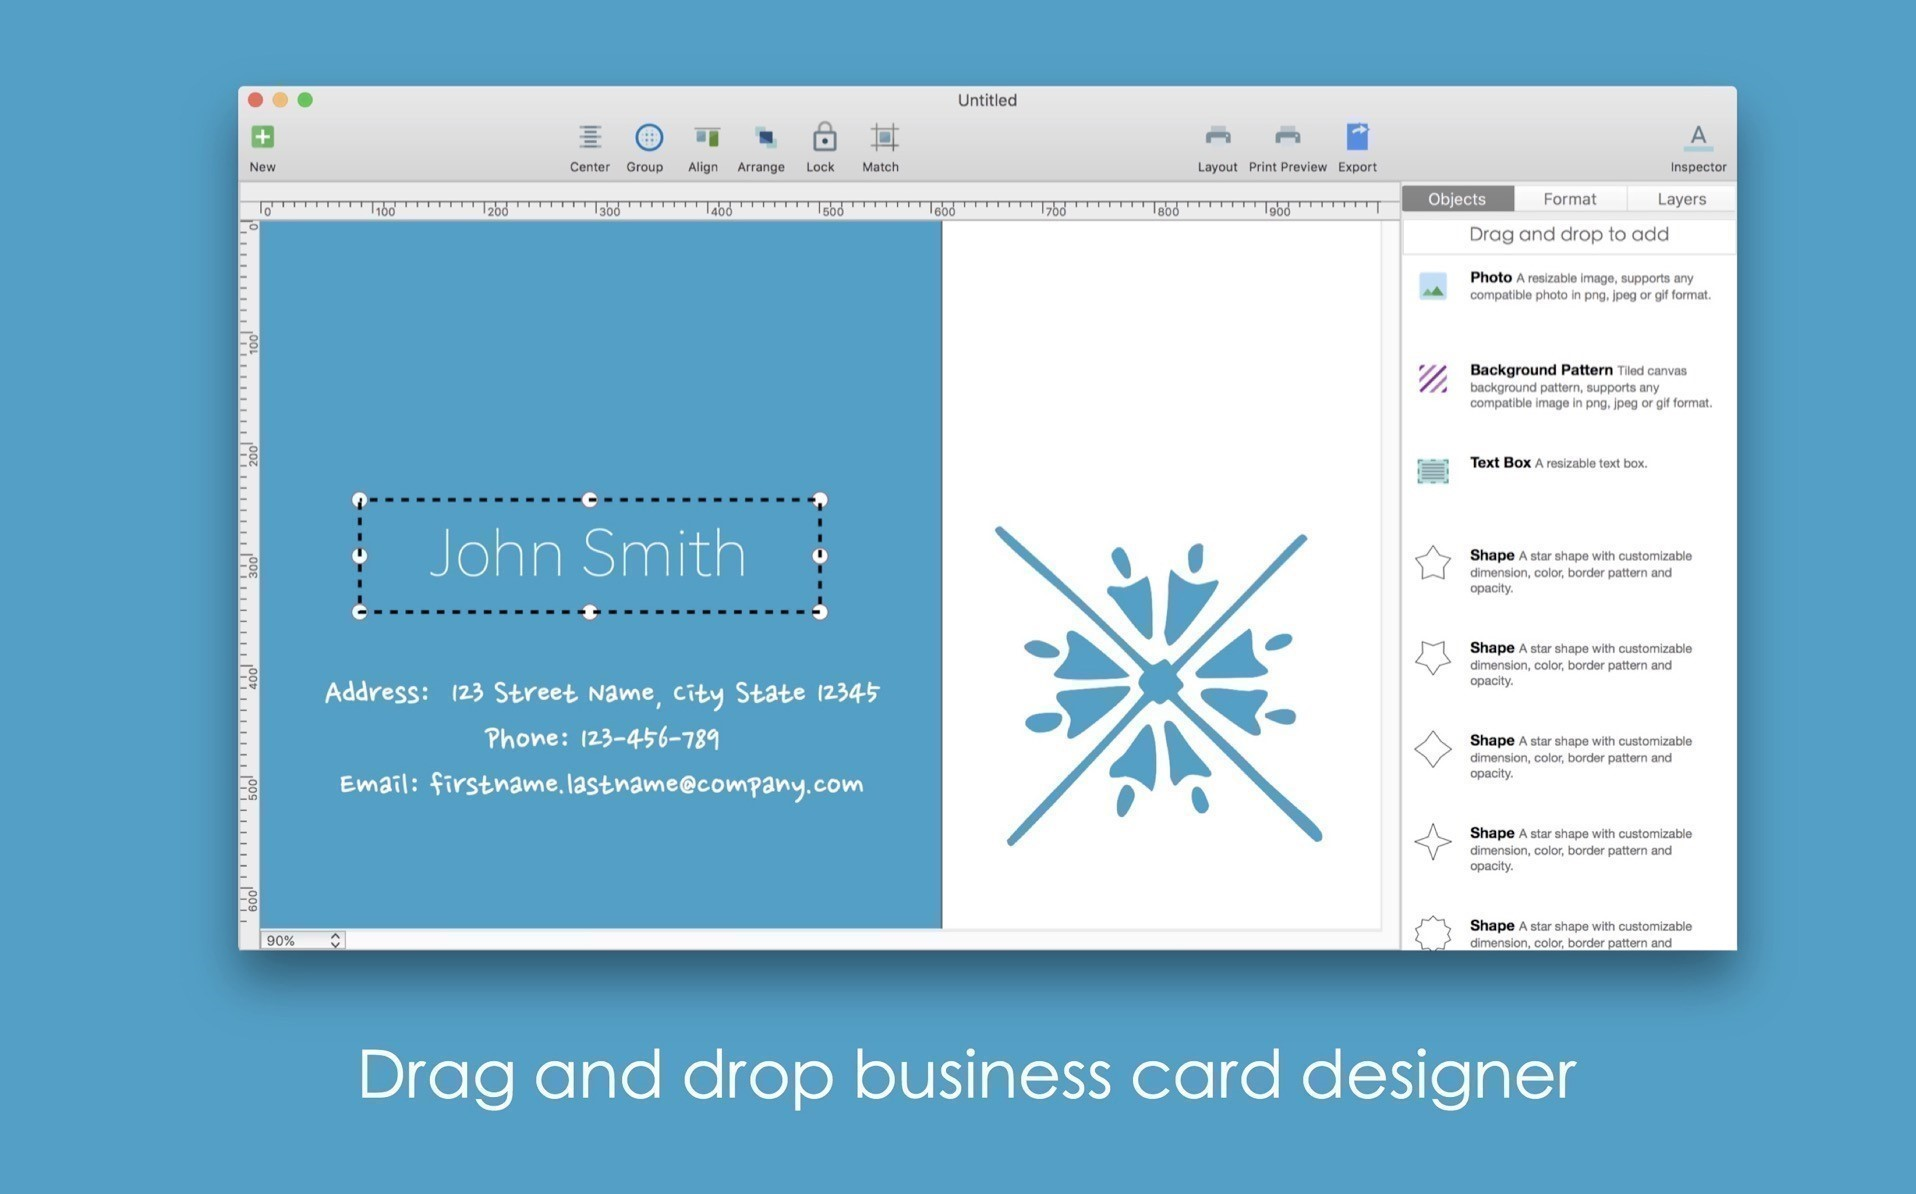 BP Business Card Designer for Mac